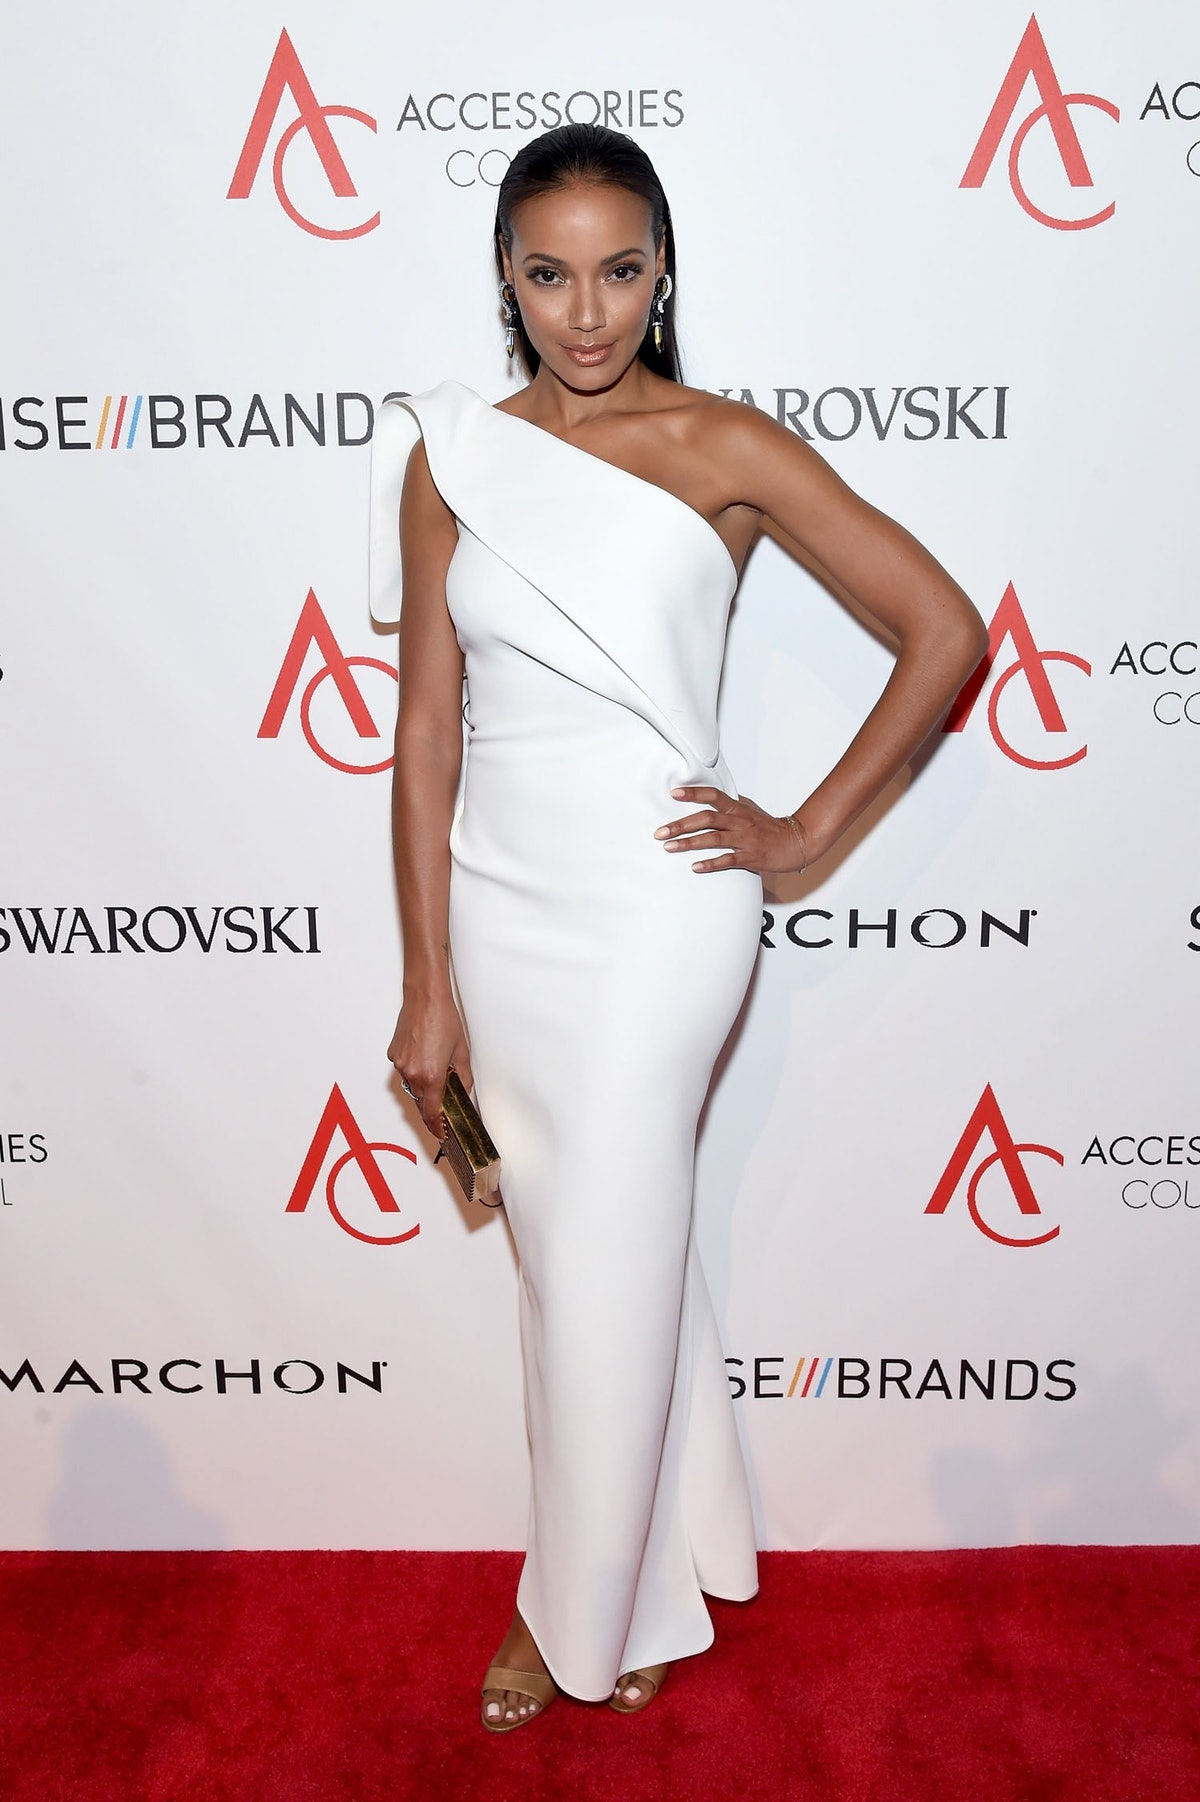 Selita Ebanks attends the 20th Anniversary of the ACE Awards.jpg